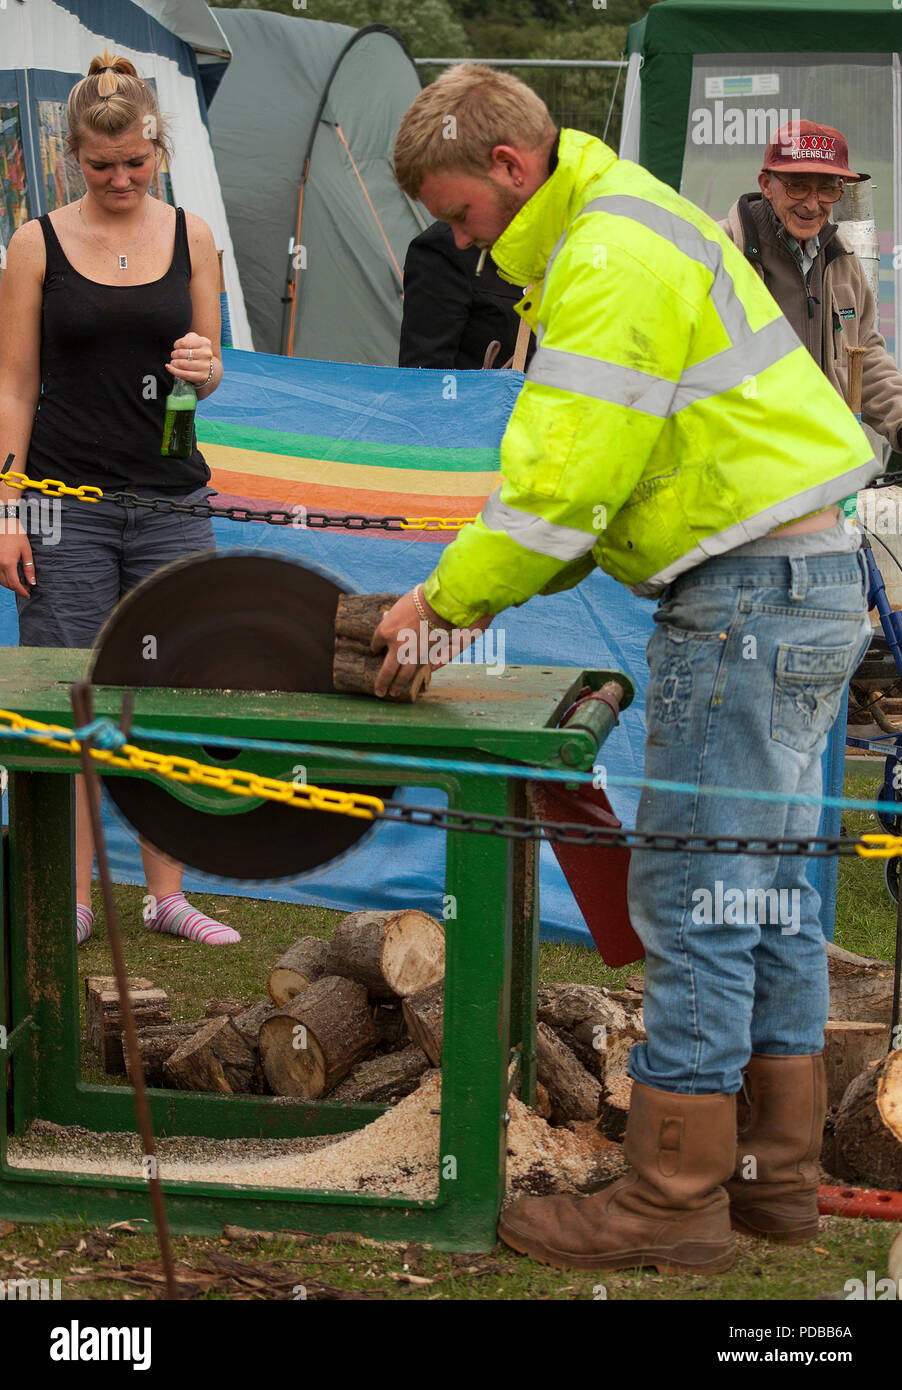 A man using a table saw with no personal protection. - Stock Image